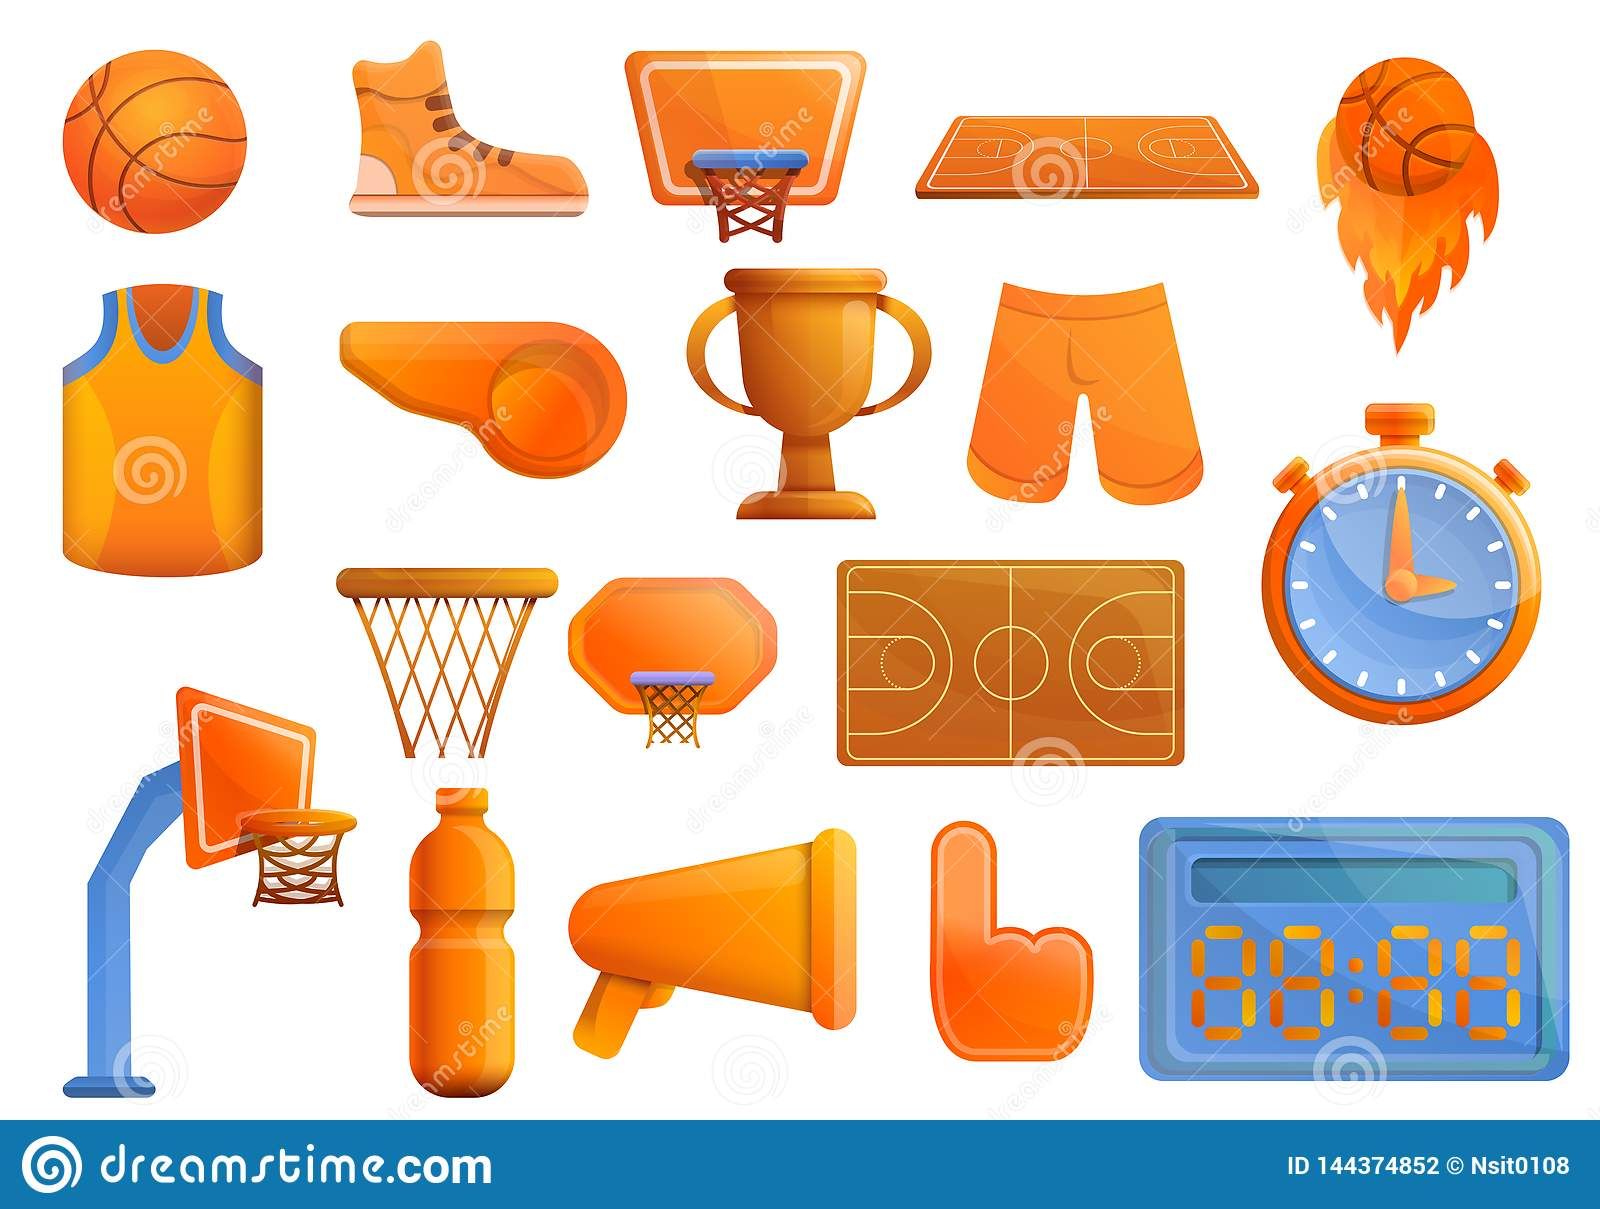 Basketball equipment icons set, cartoon style